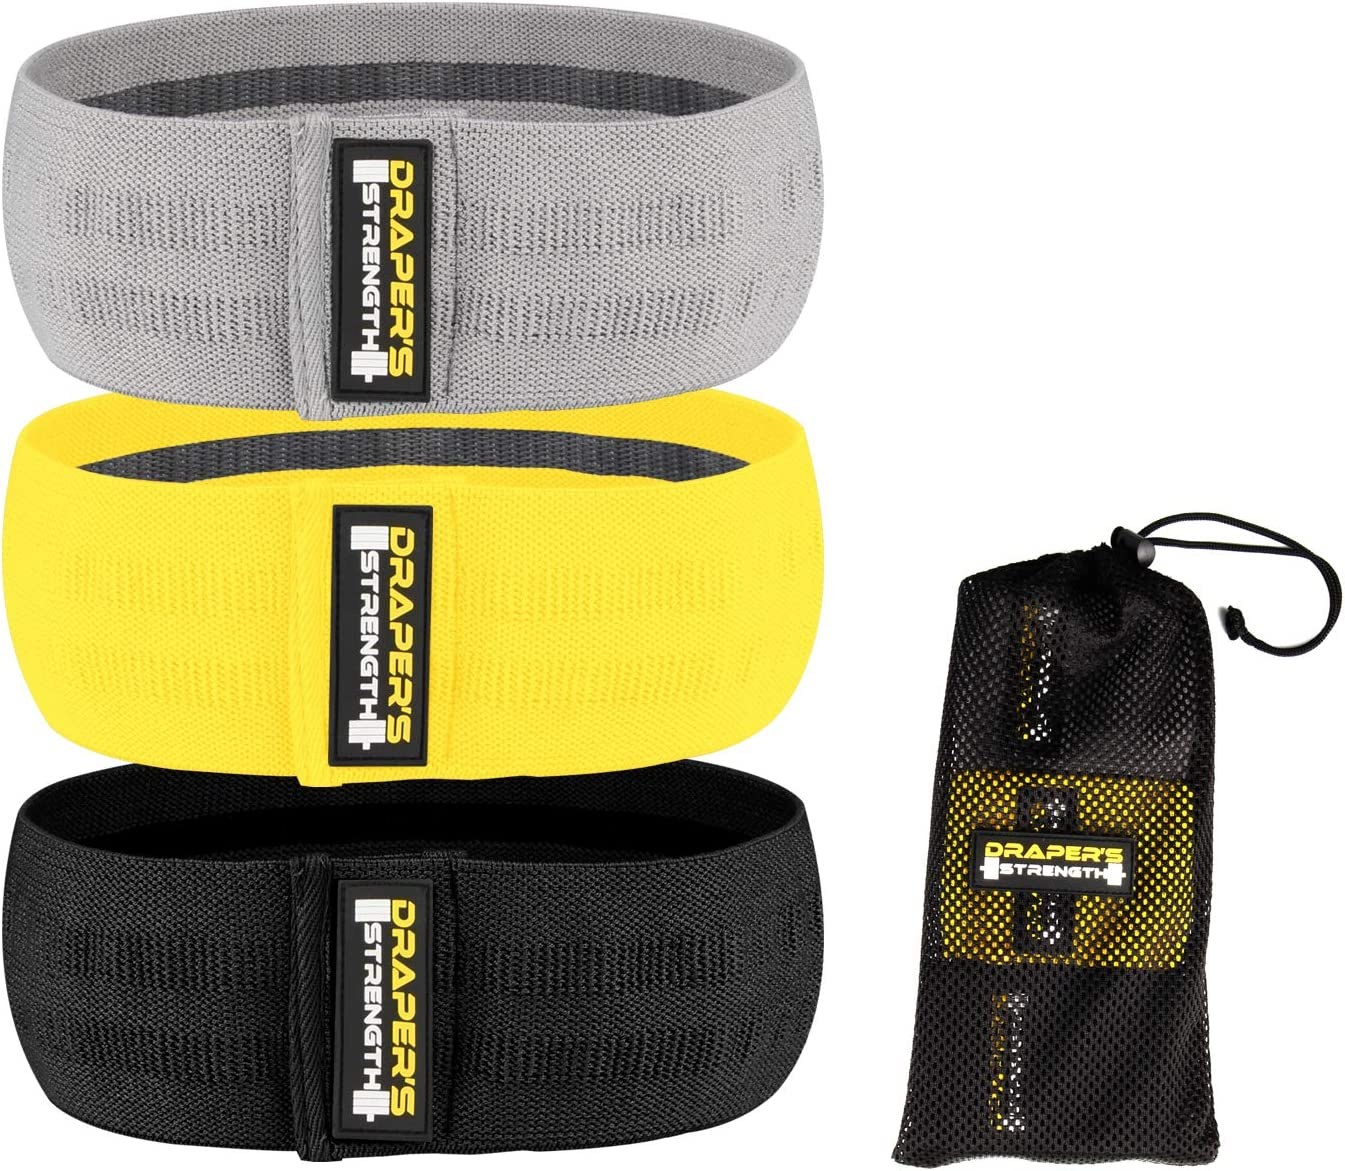 Drapers Strength Resistance Hip Bands